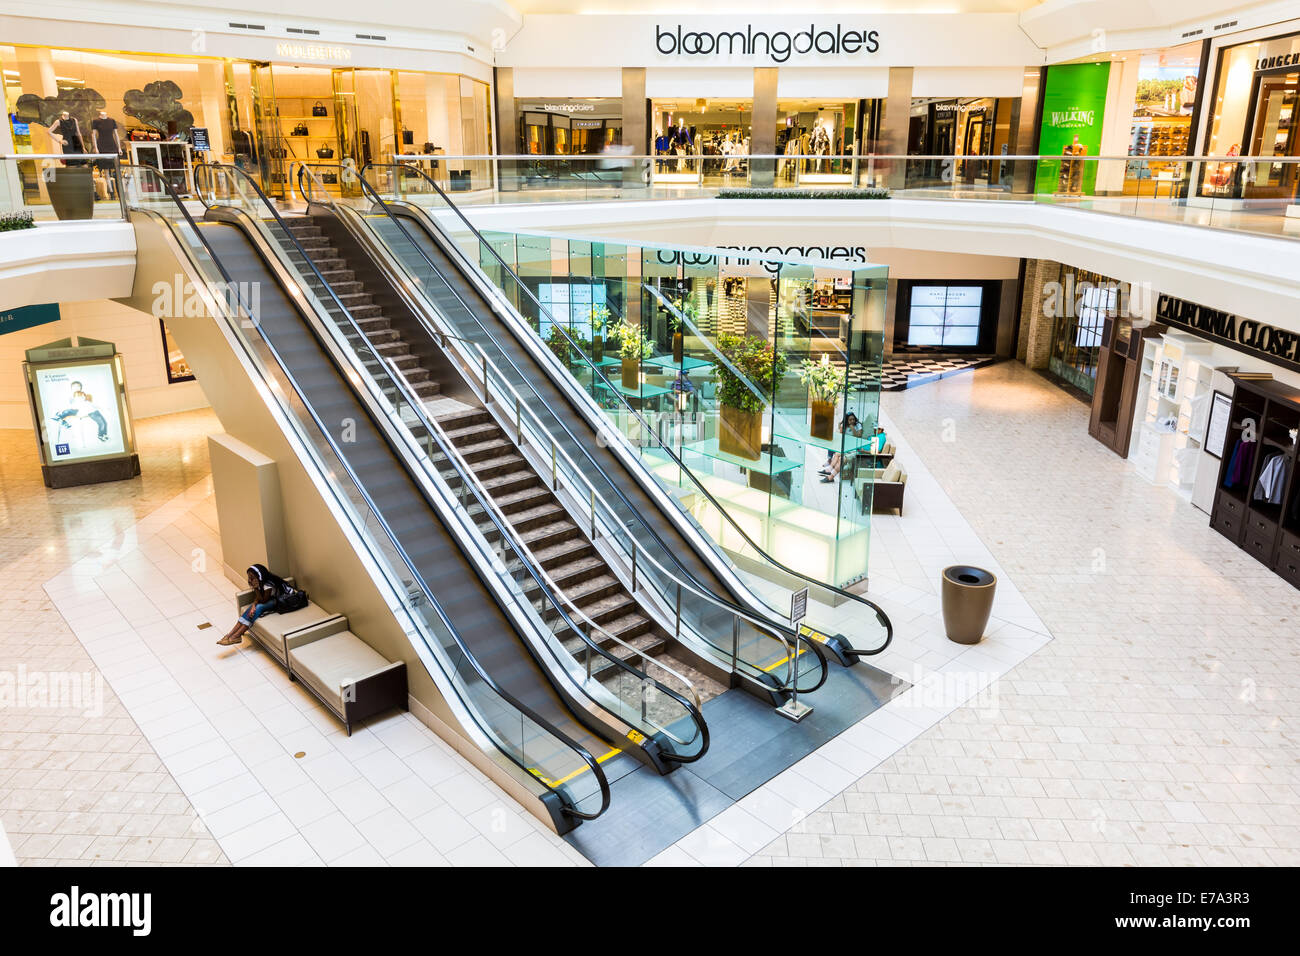 The Mall at Short Hills. - Stock Image